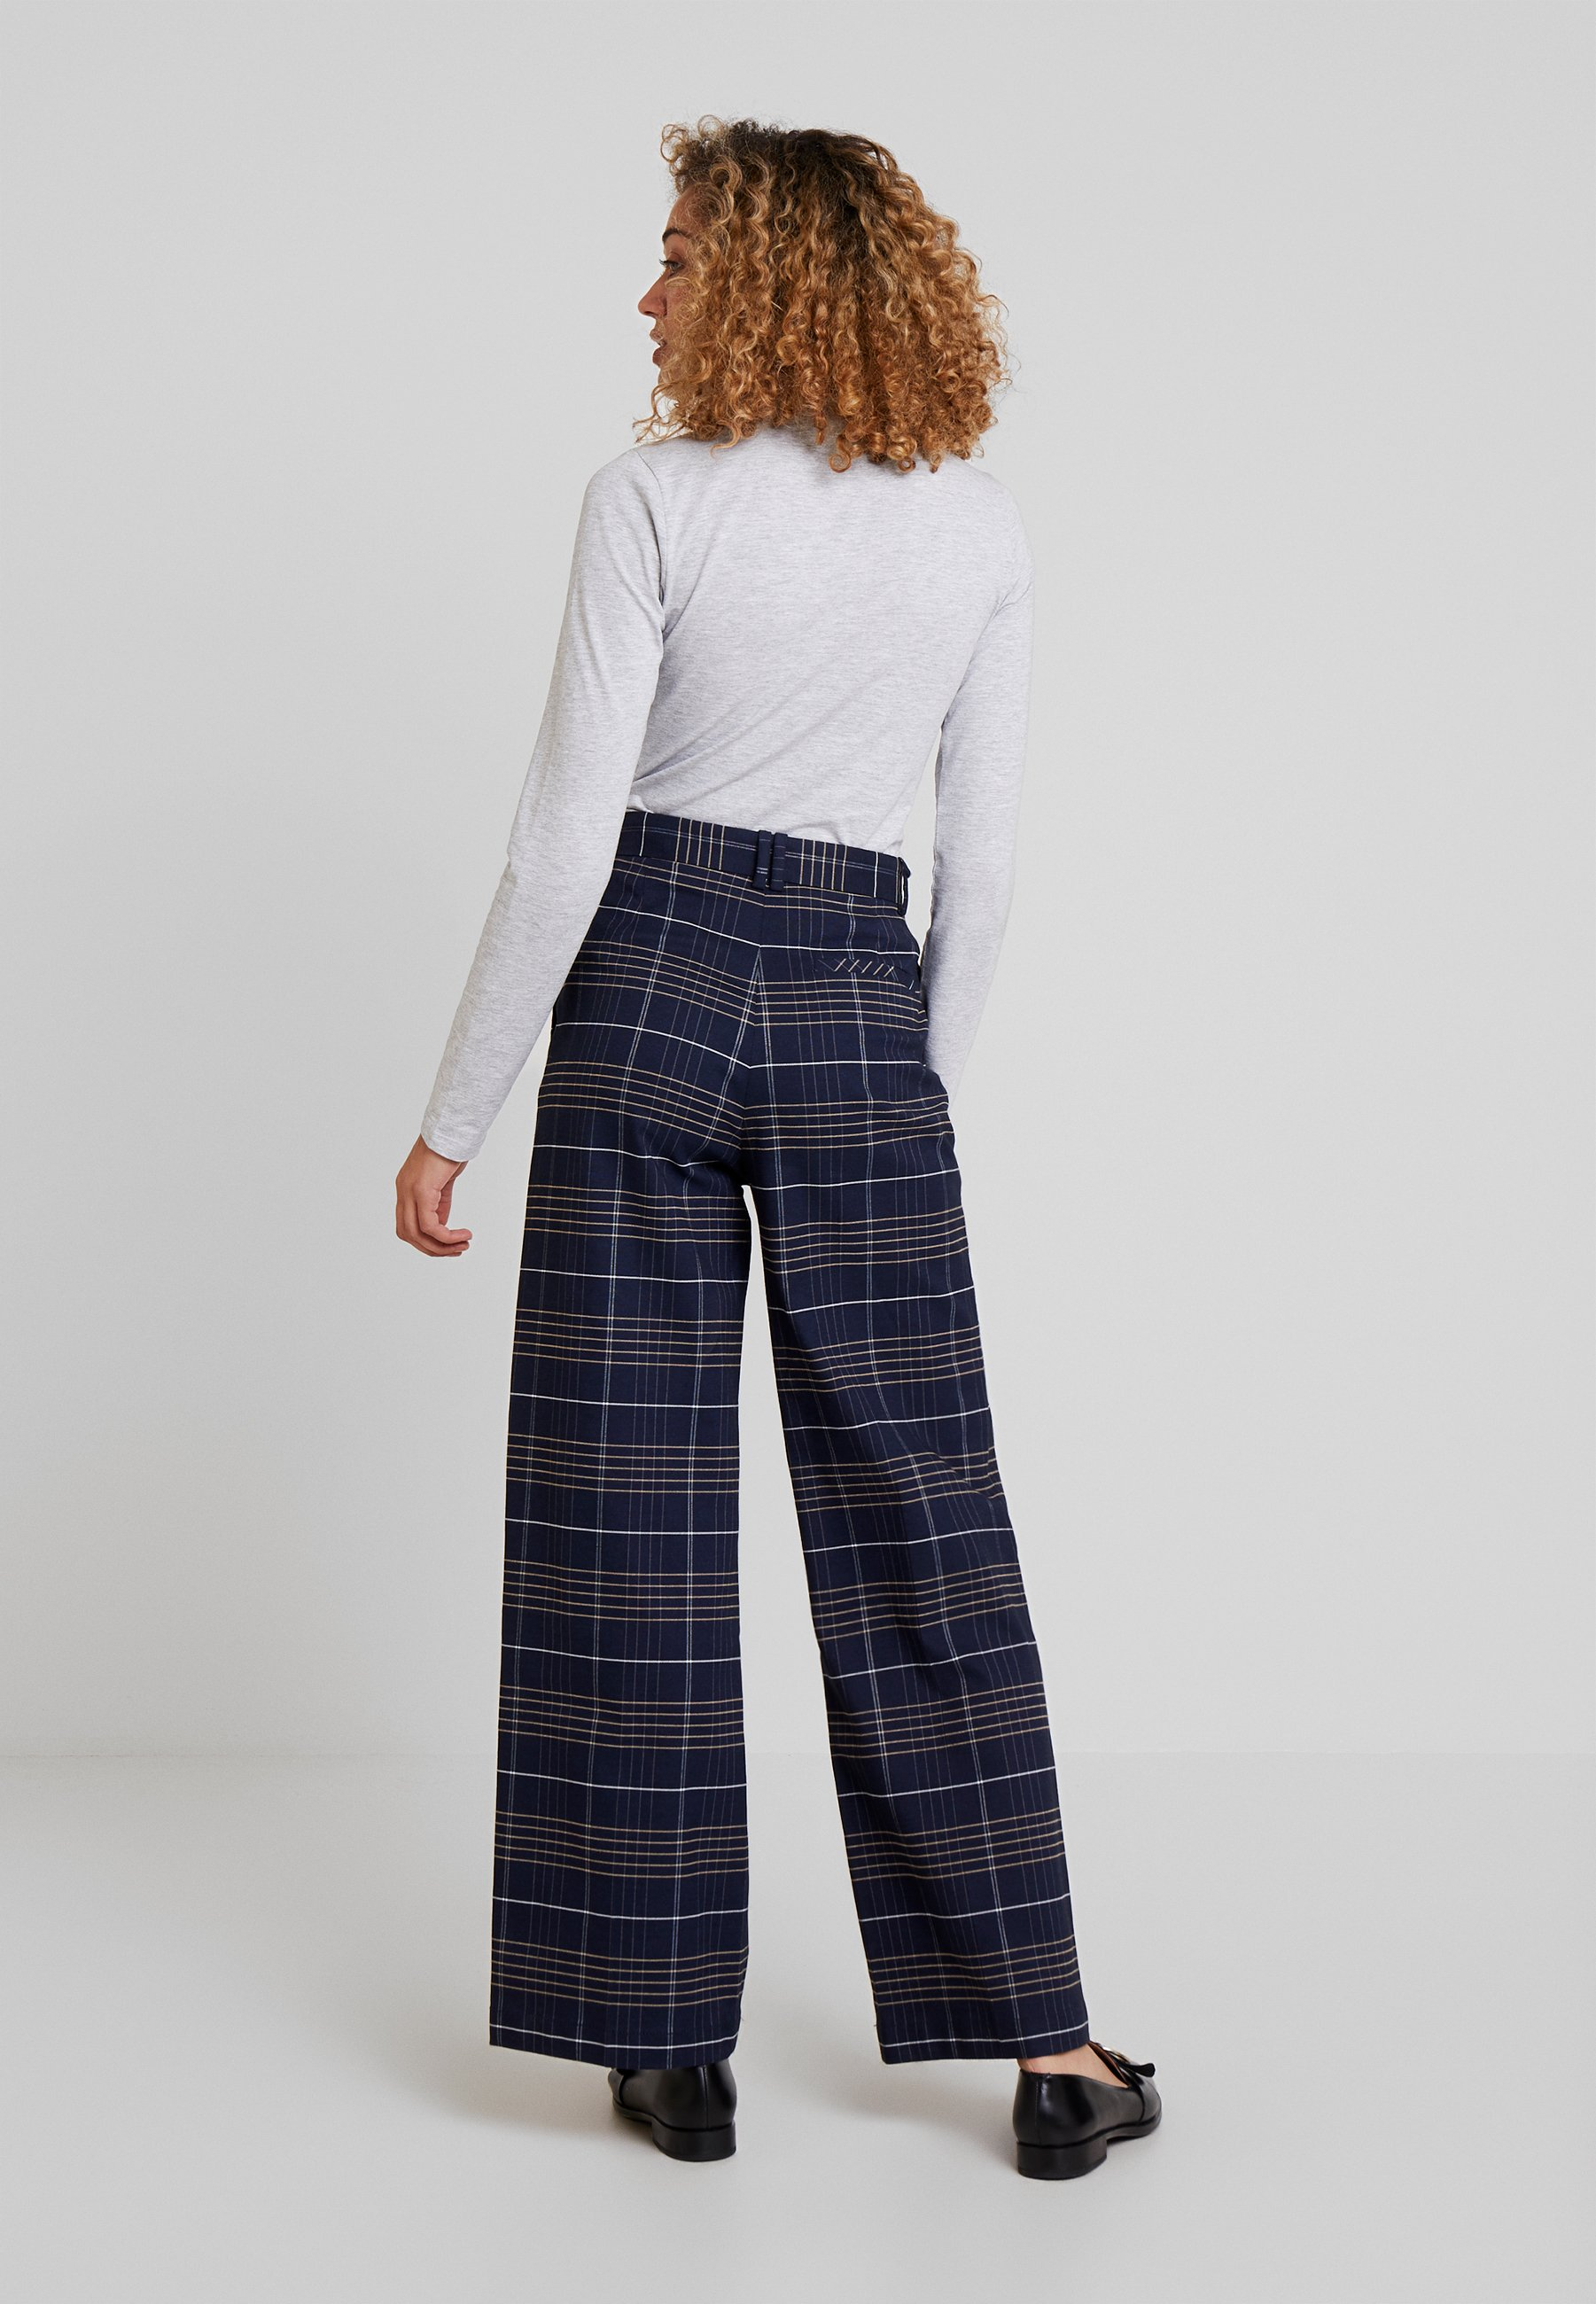 Combo Marc Classique Wide Pants High O'polo Leg RisePantalon MpLzjqUVGS